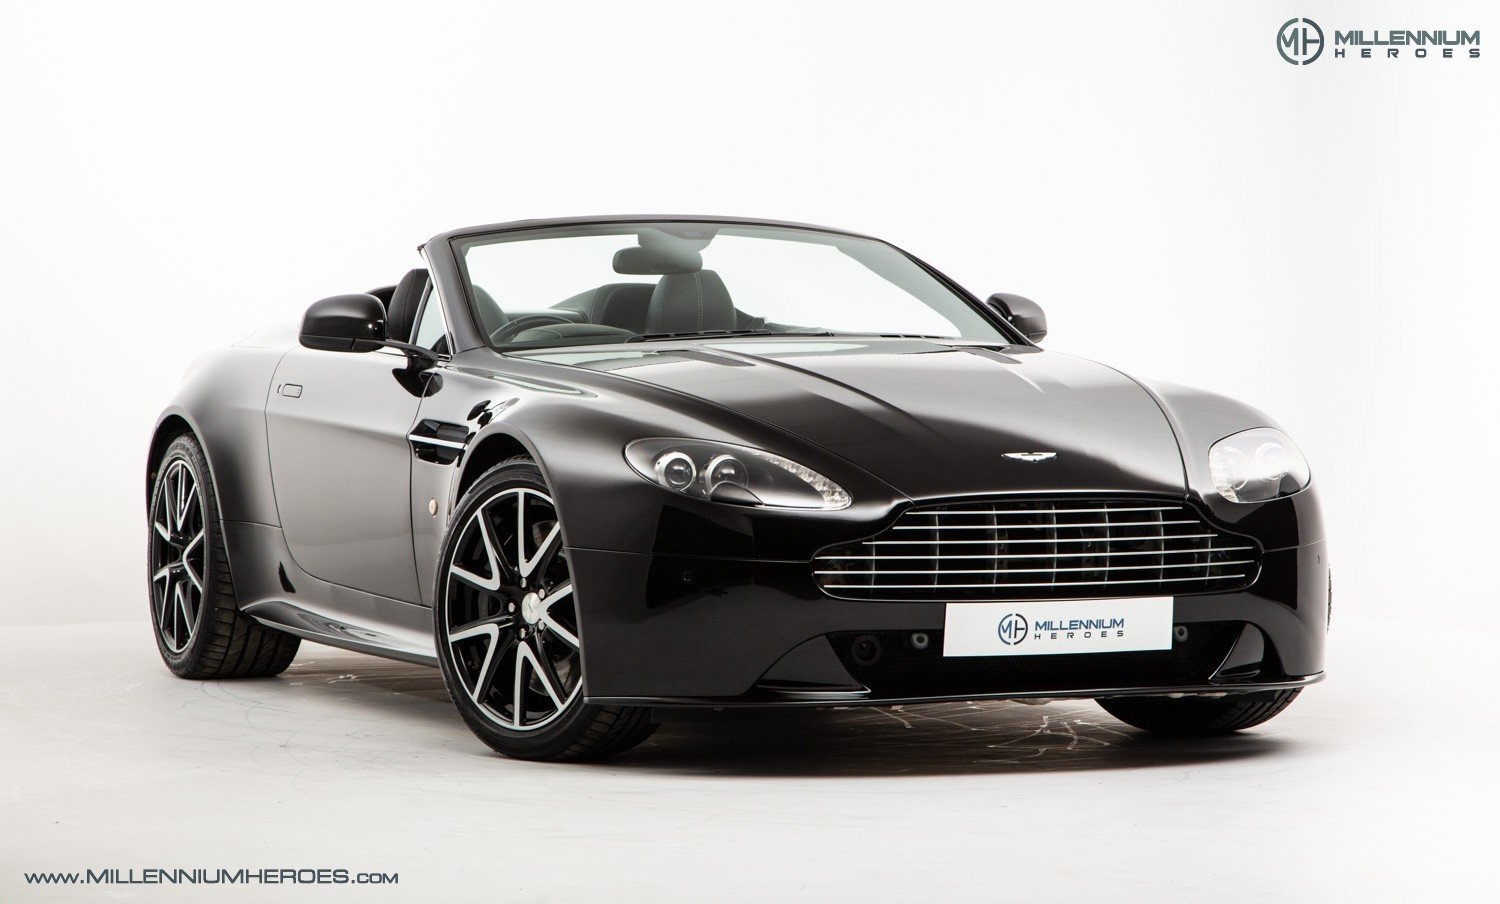 2013 ASTON MARTIN V8 VANTAGE S // AM WARRANTY // FULL AM HISTORY  For Sale (picture 6 of 23)